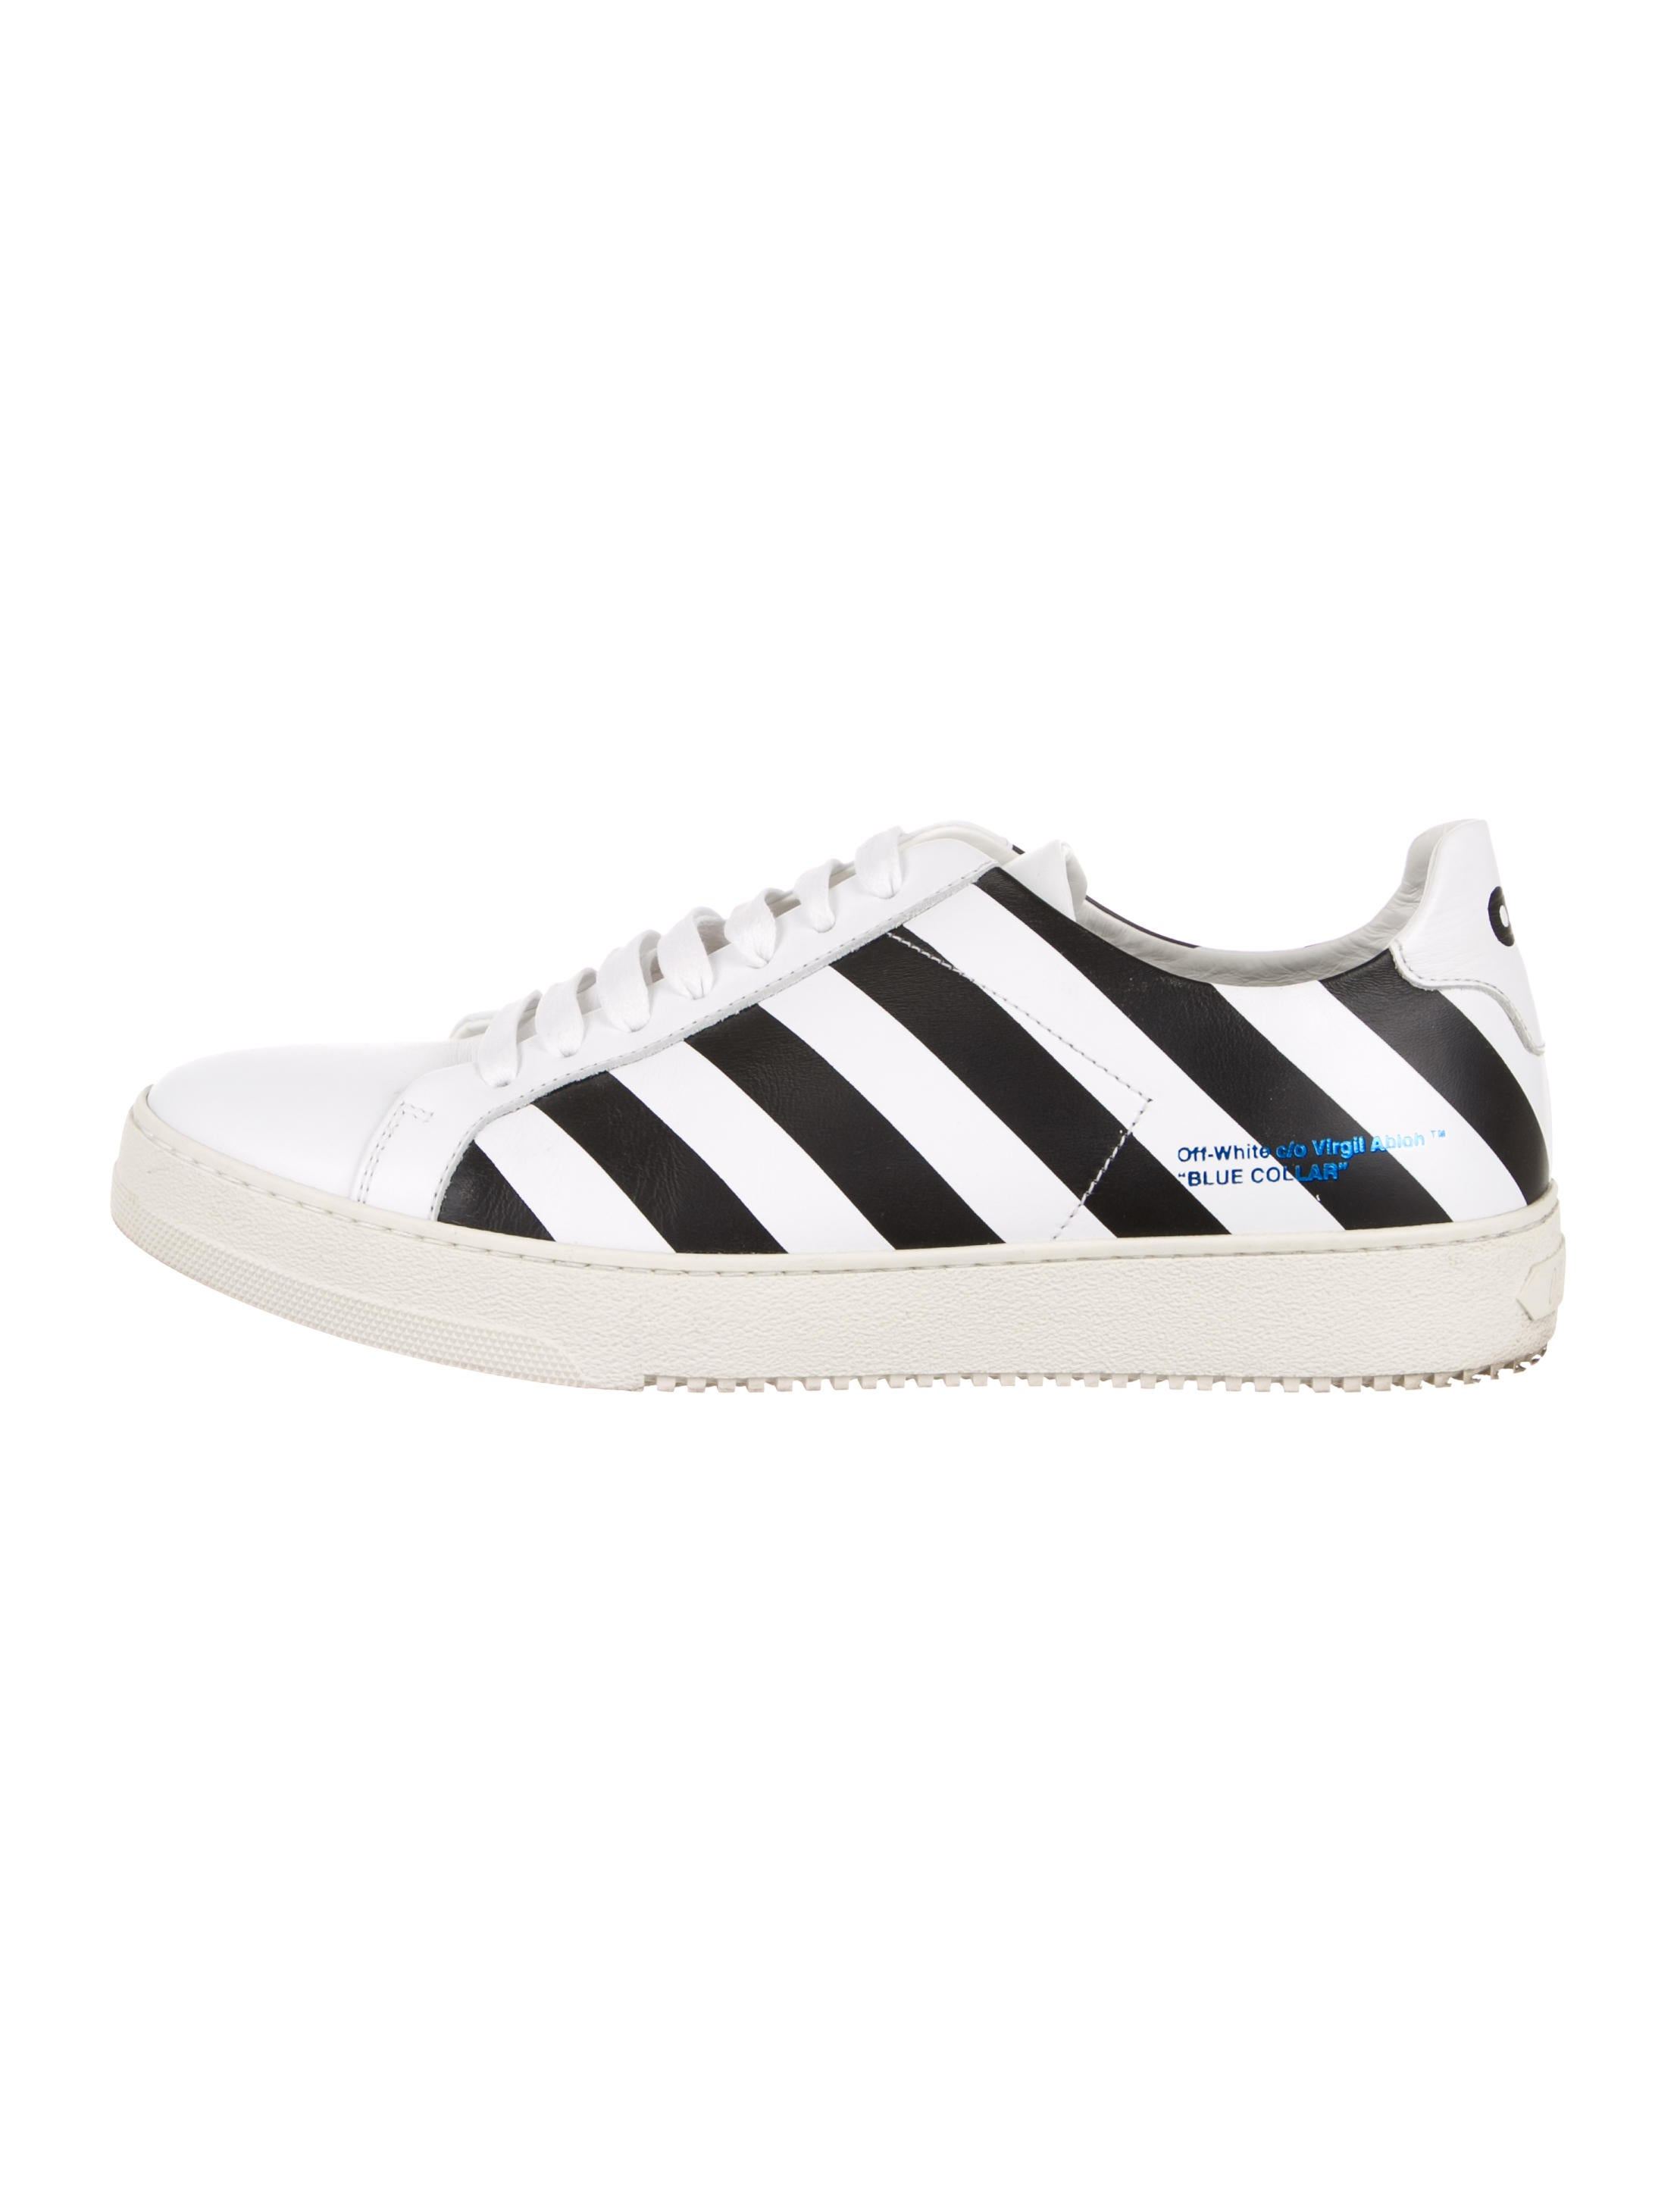 c095ac9dde69 Off-White c o Virgil Abloh Leather Diagonal Sneakers - Shoes ...